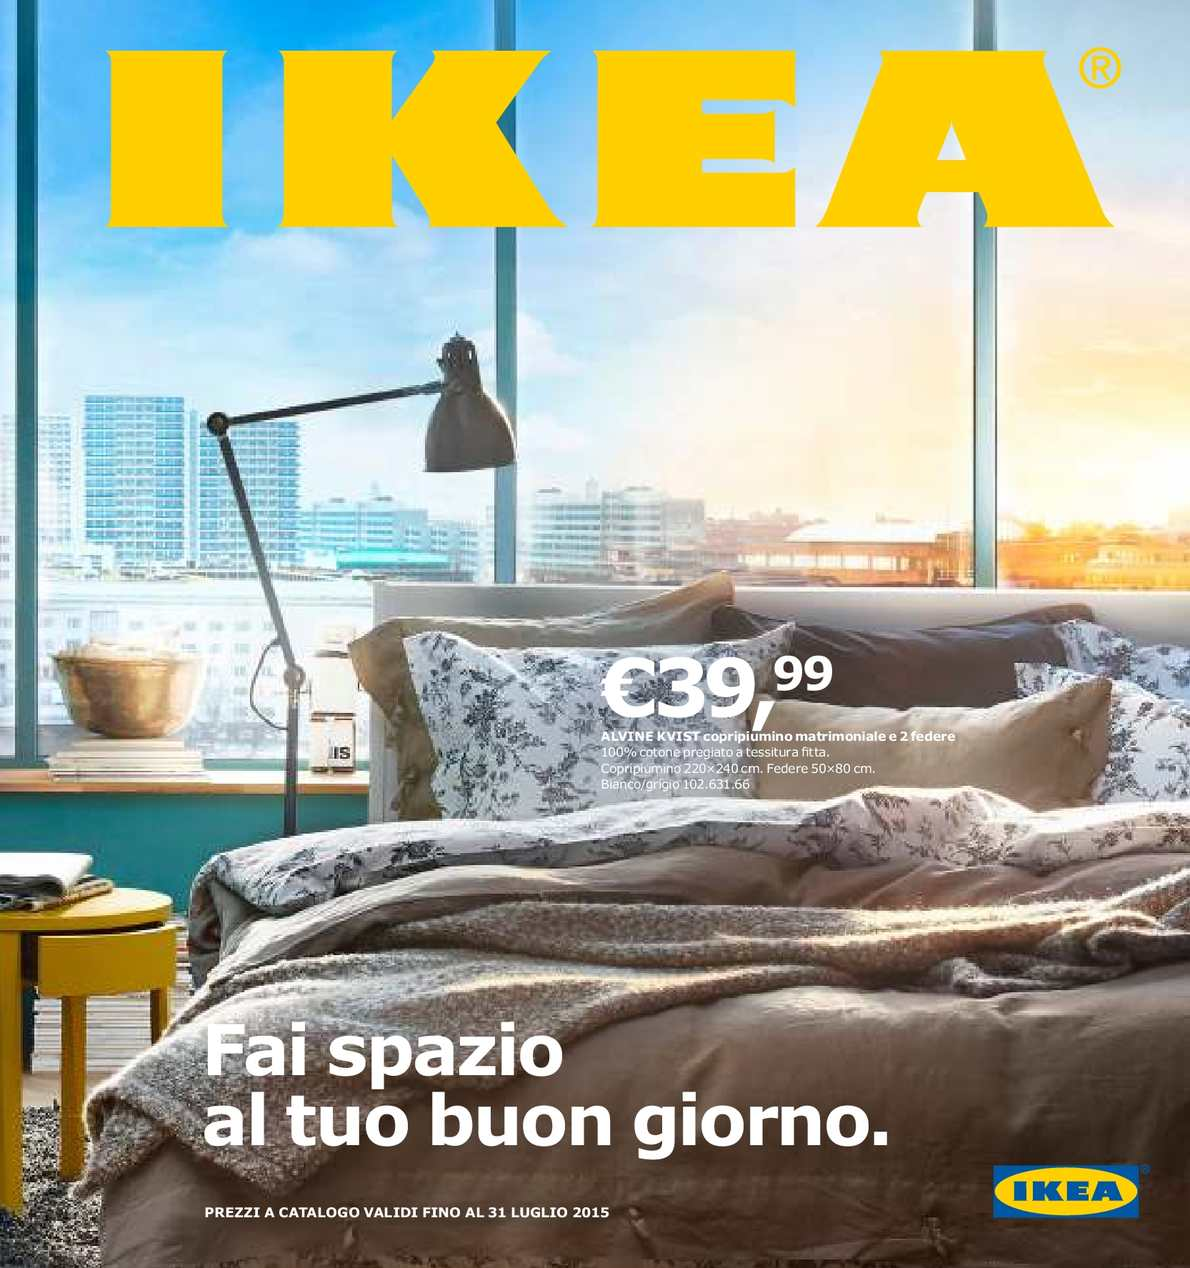 Catalogue Ikea Calaméo Catalogo Ikea 14 15